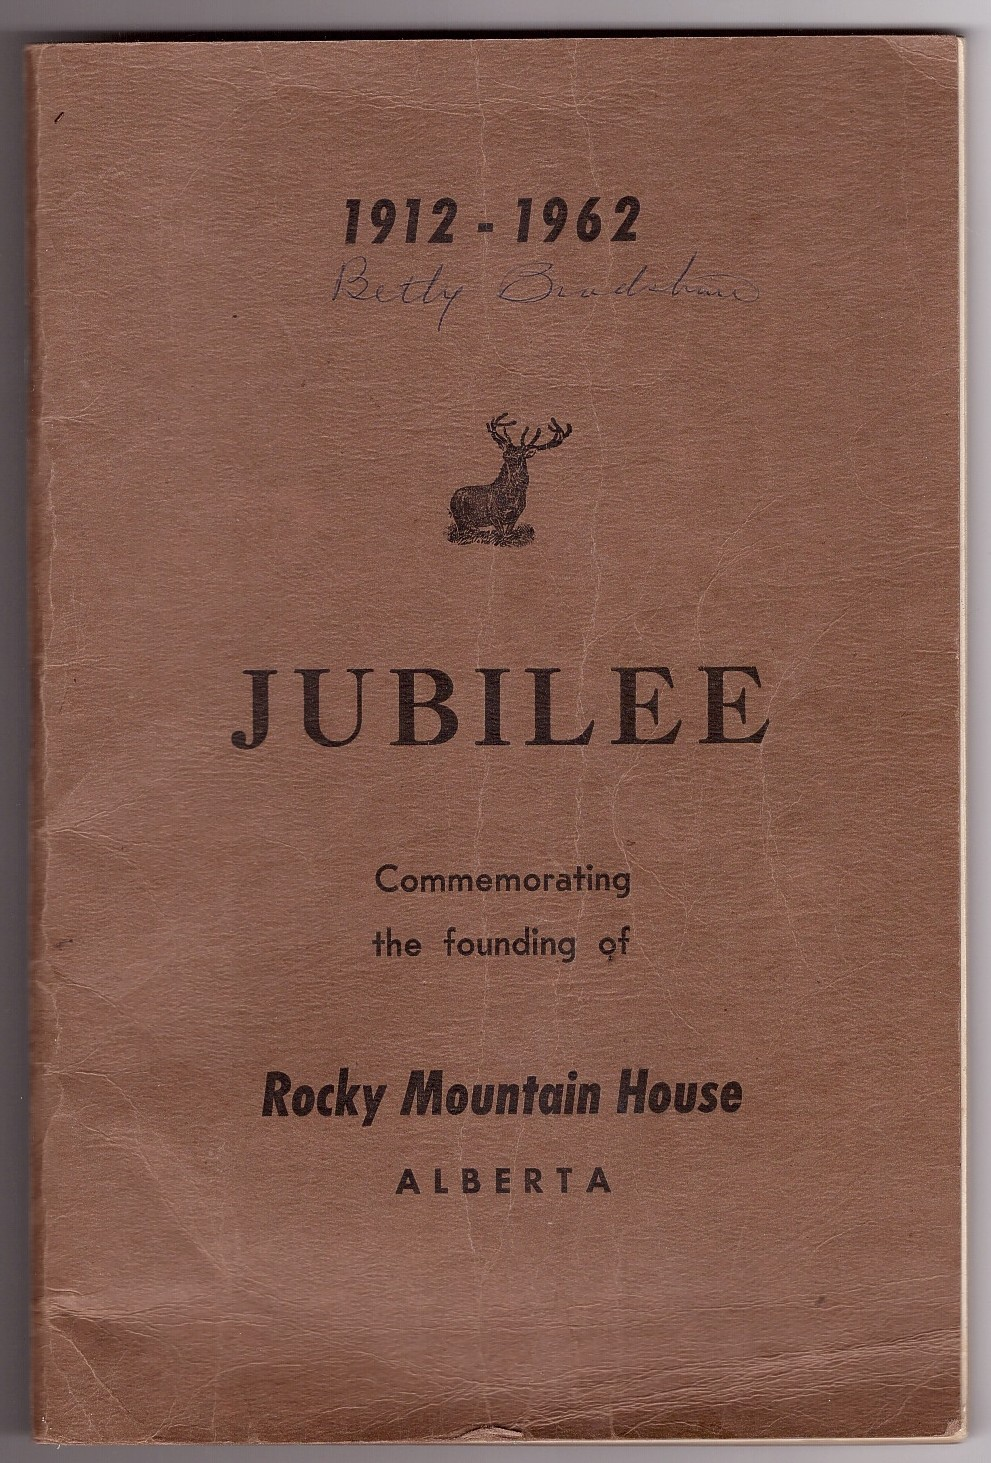 Image for 1912 - 1962 Stories of the Pioneers of the West Country Celebrating the 50th Jubilee of the founding of Rocky Mountain House, Alberta